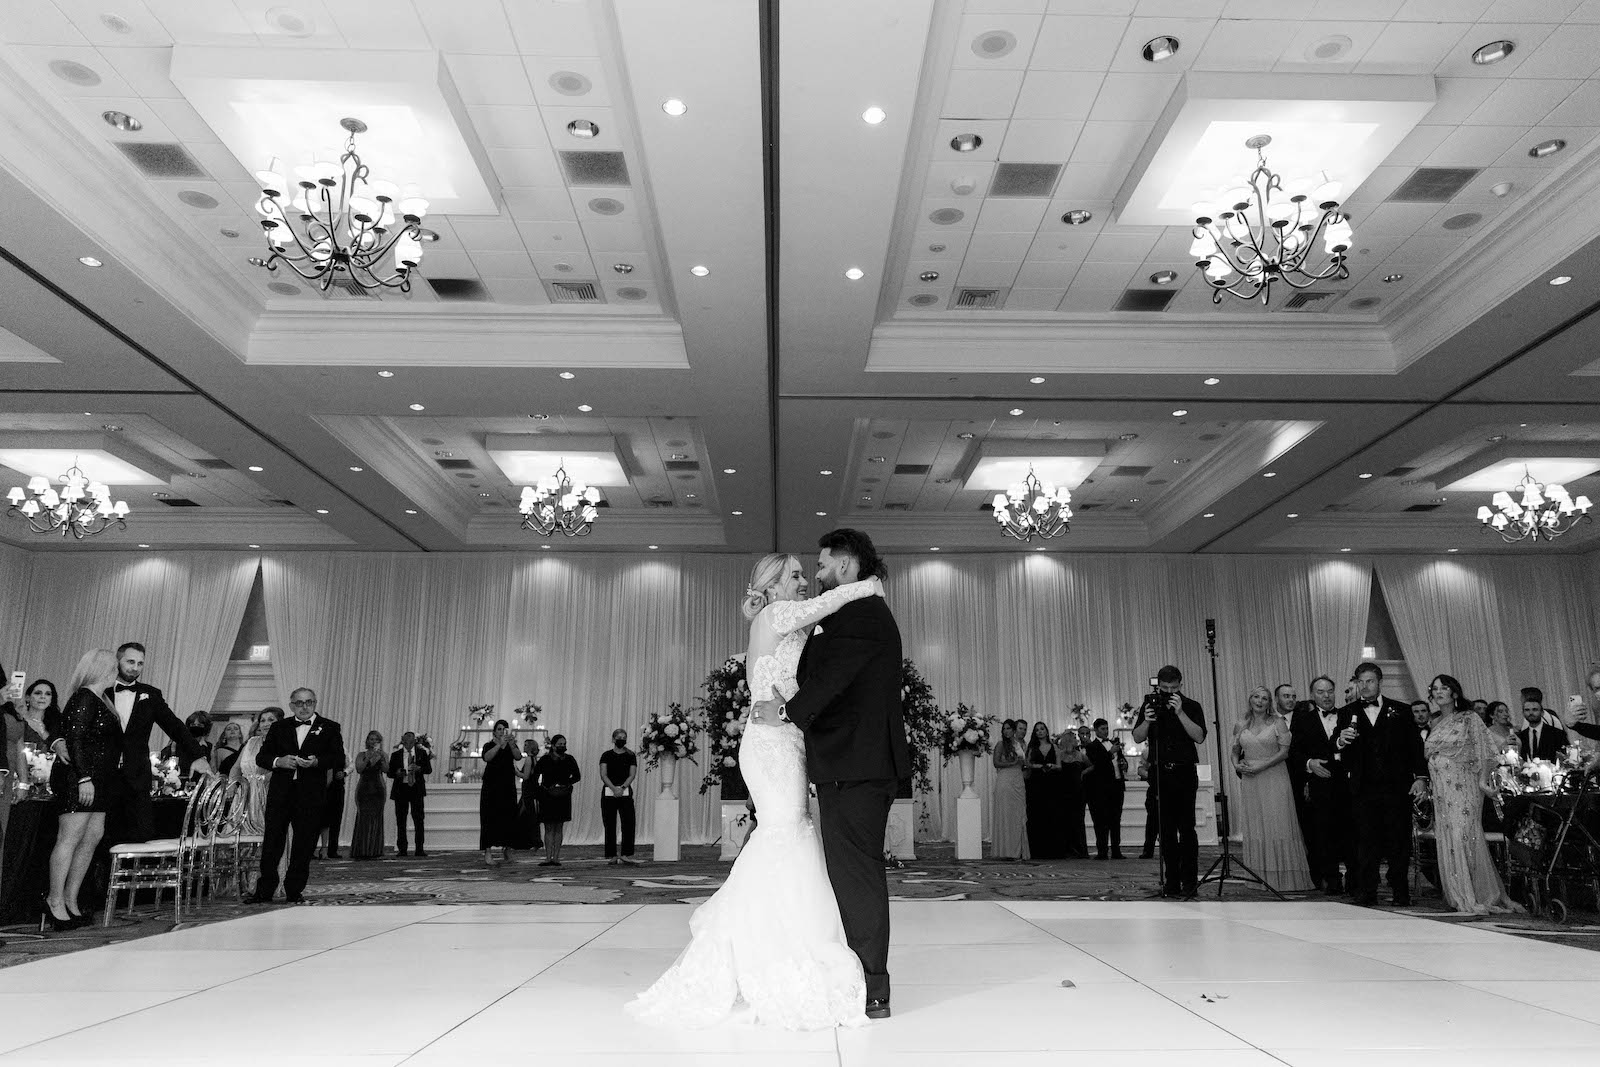 Tampa Bride and Groom First Dance Wedding Reception Photo | Tampa Bay Wedding Planner Parties A'la Carte | St. Pete Wedding Venue The Vinoy